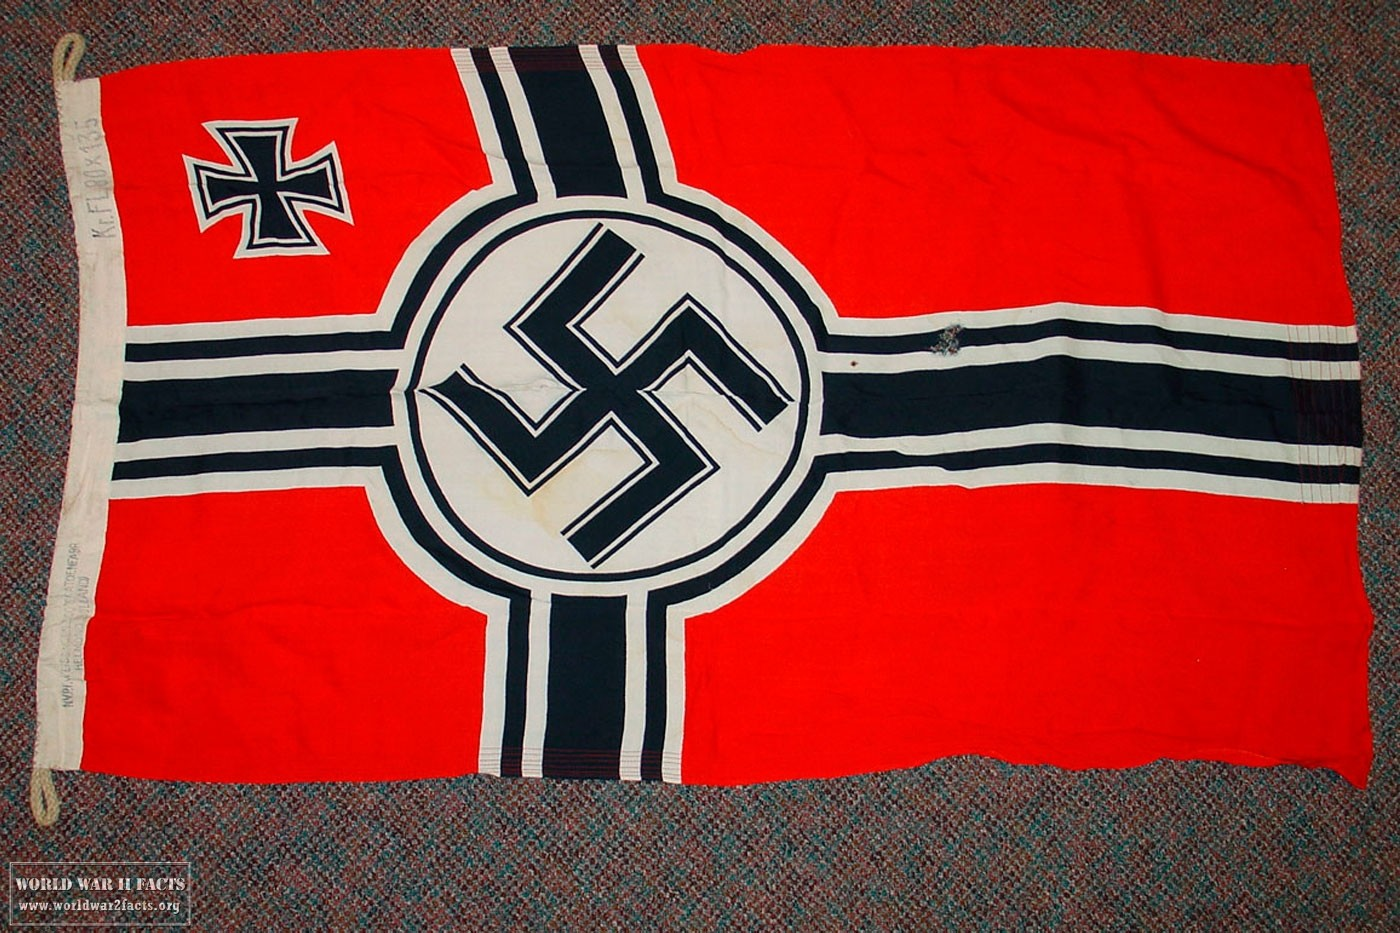 World war 2 flags world war 2 facts since populations around the world have grown to the point of forming nationals national flags have served as a symbol of a countrys peoples ideals buycottarizona Gallery